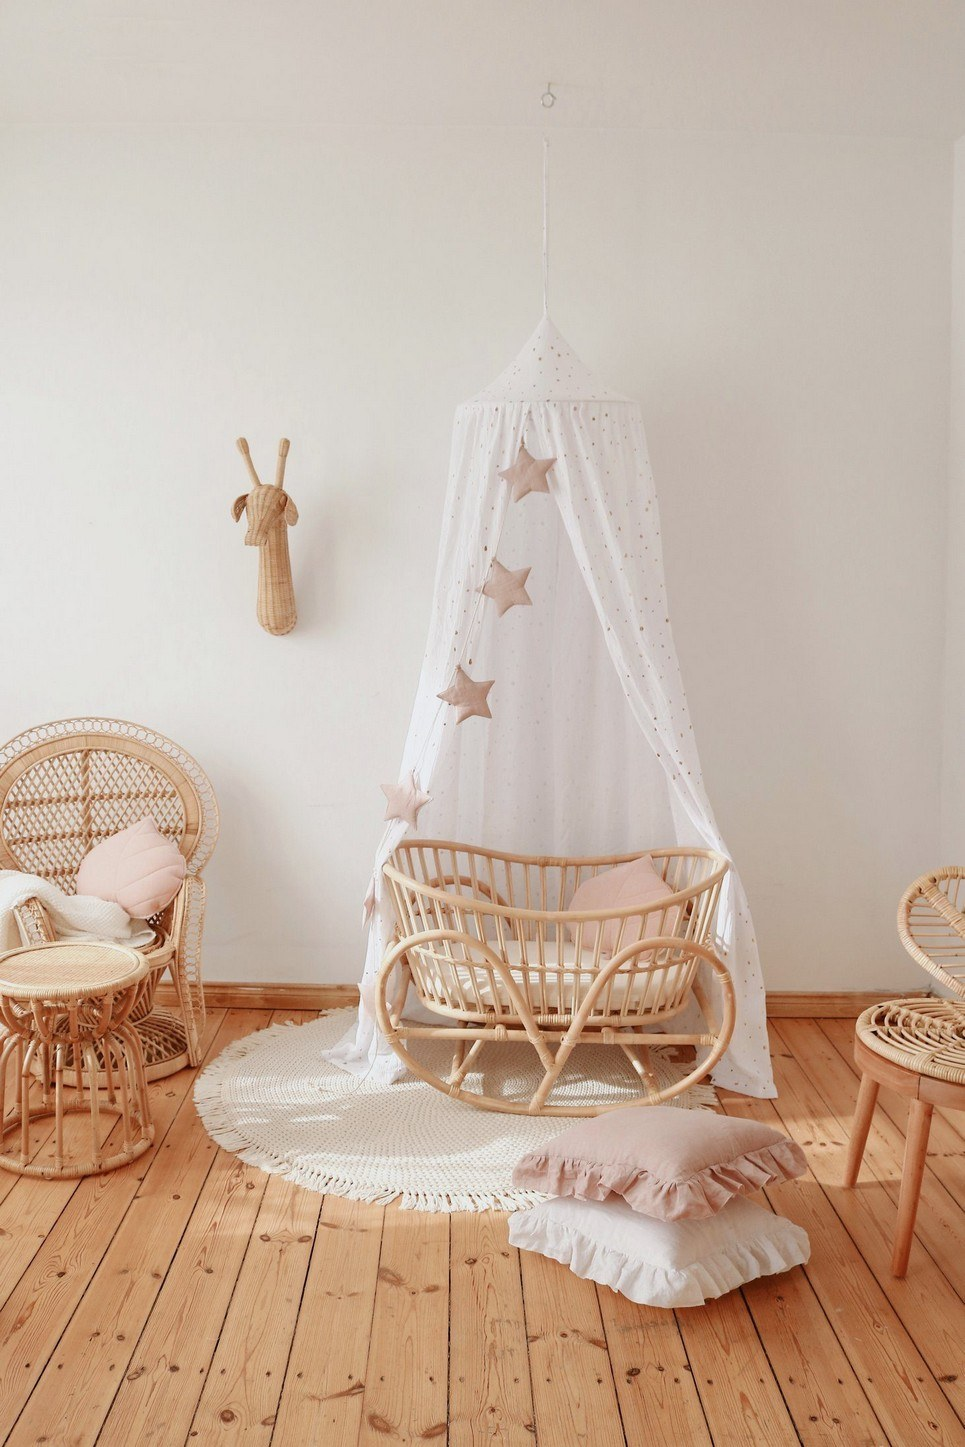 White and Gold Children's Bed Canopy